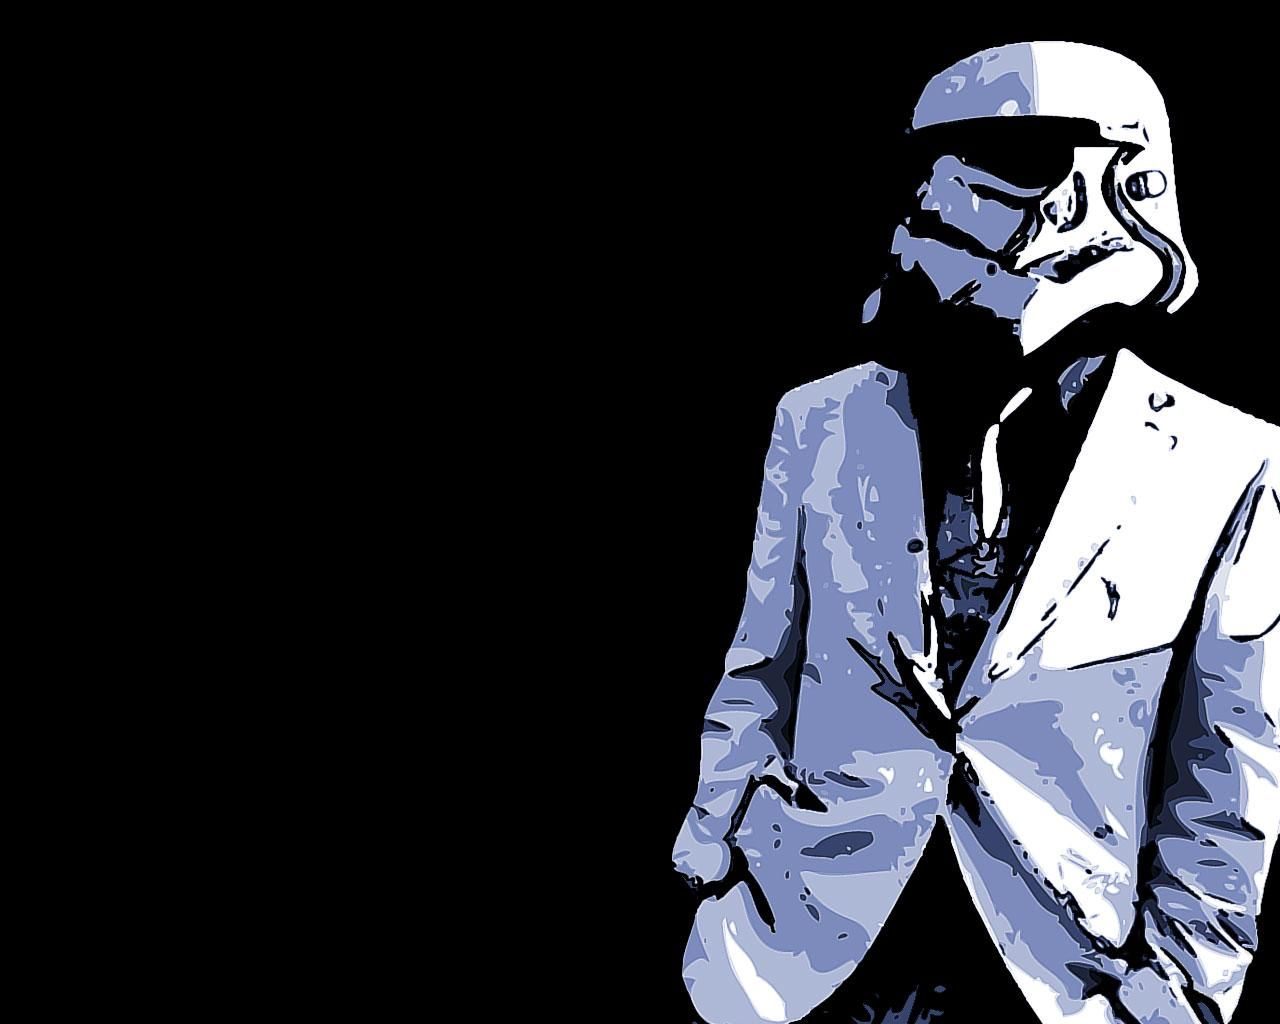 Cool Star Wars Wallpapers Top Free Cool Star Wars Backgrounds Wallpaperaccess